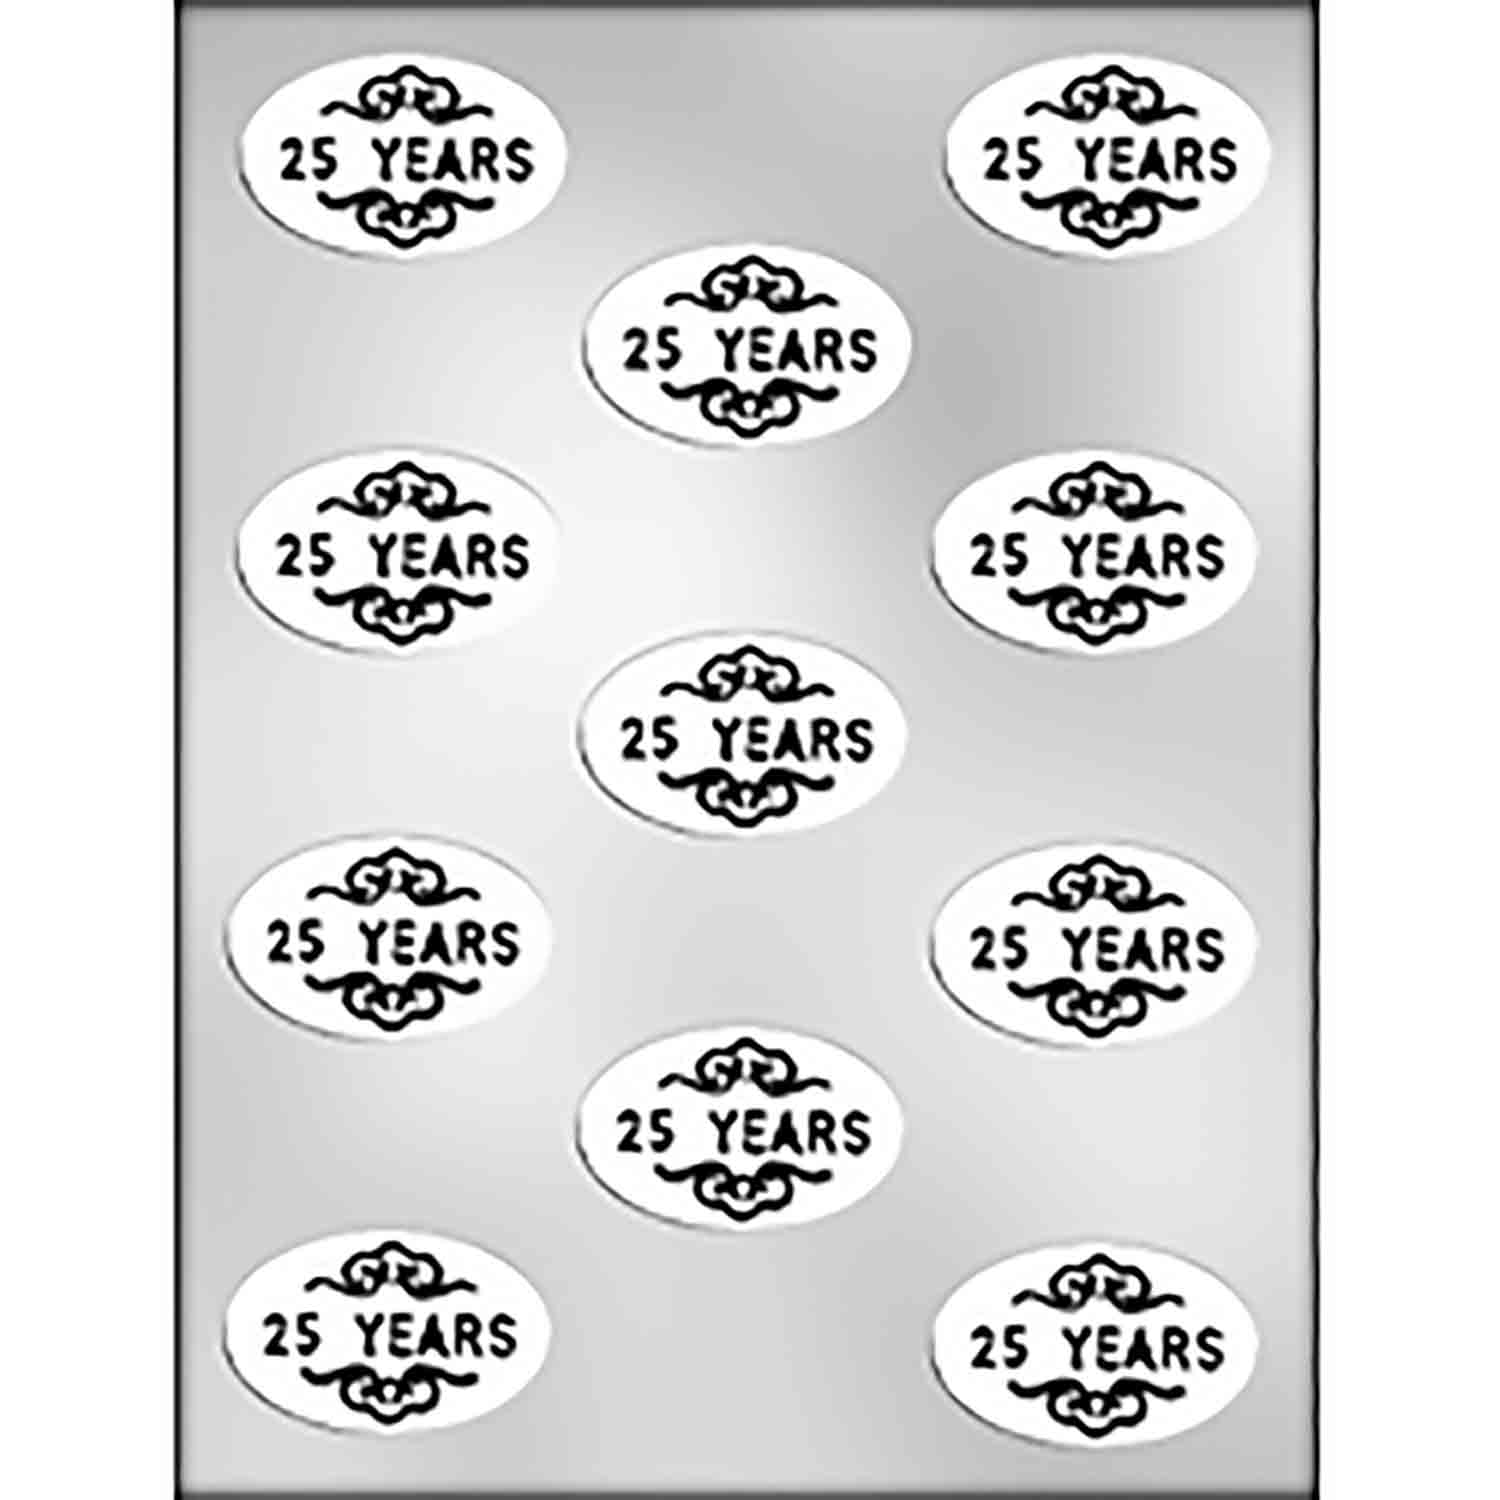 """25 YEARS"" on Oval Chocolate Candy Mold"